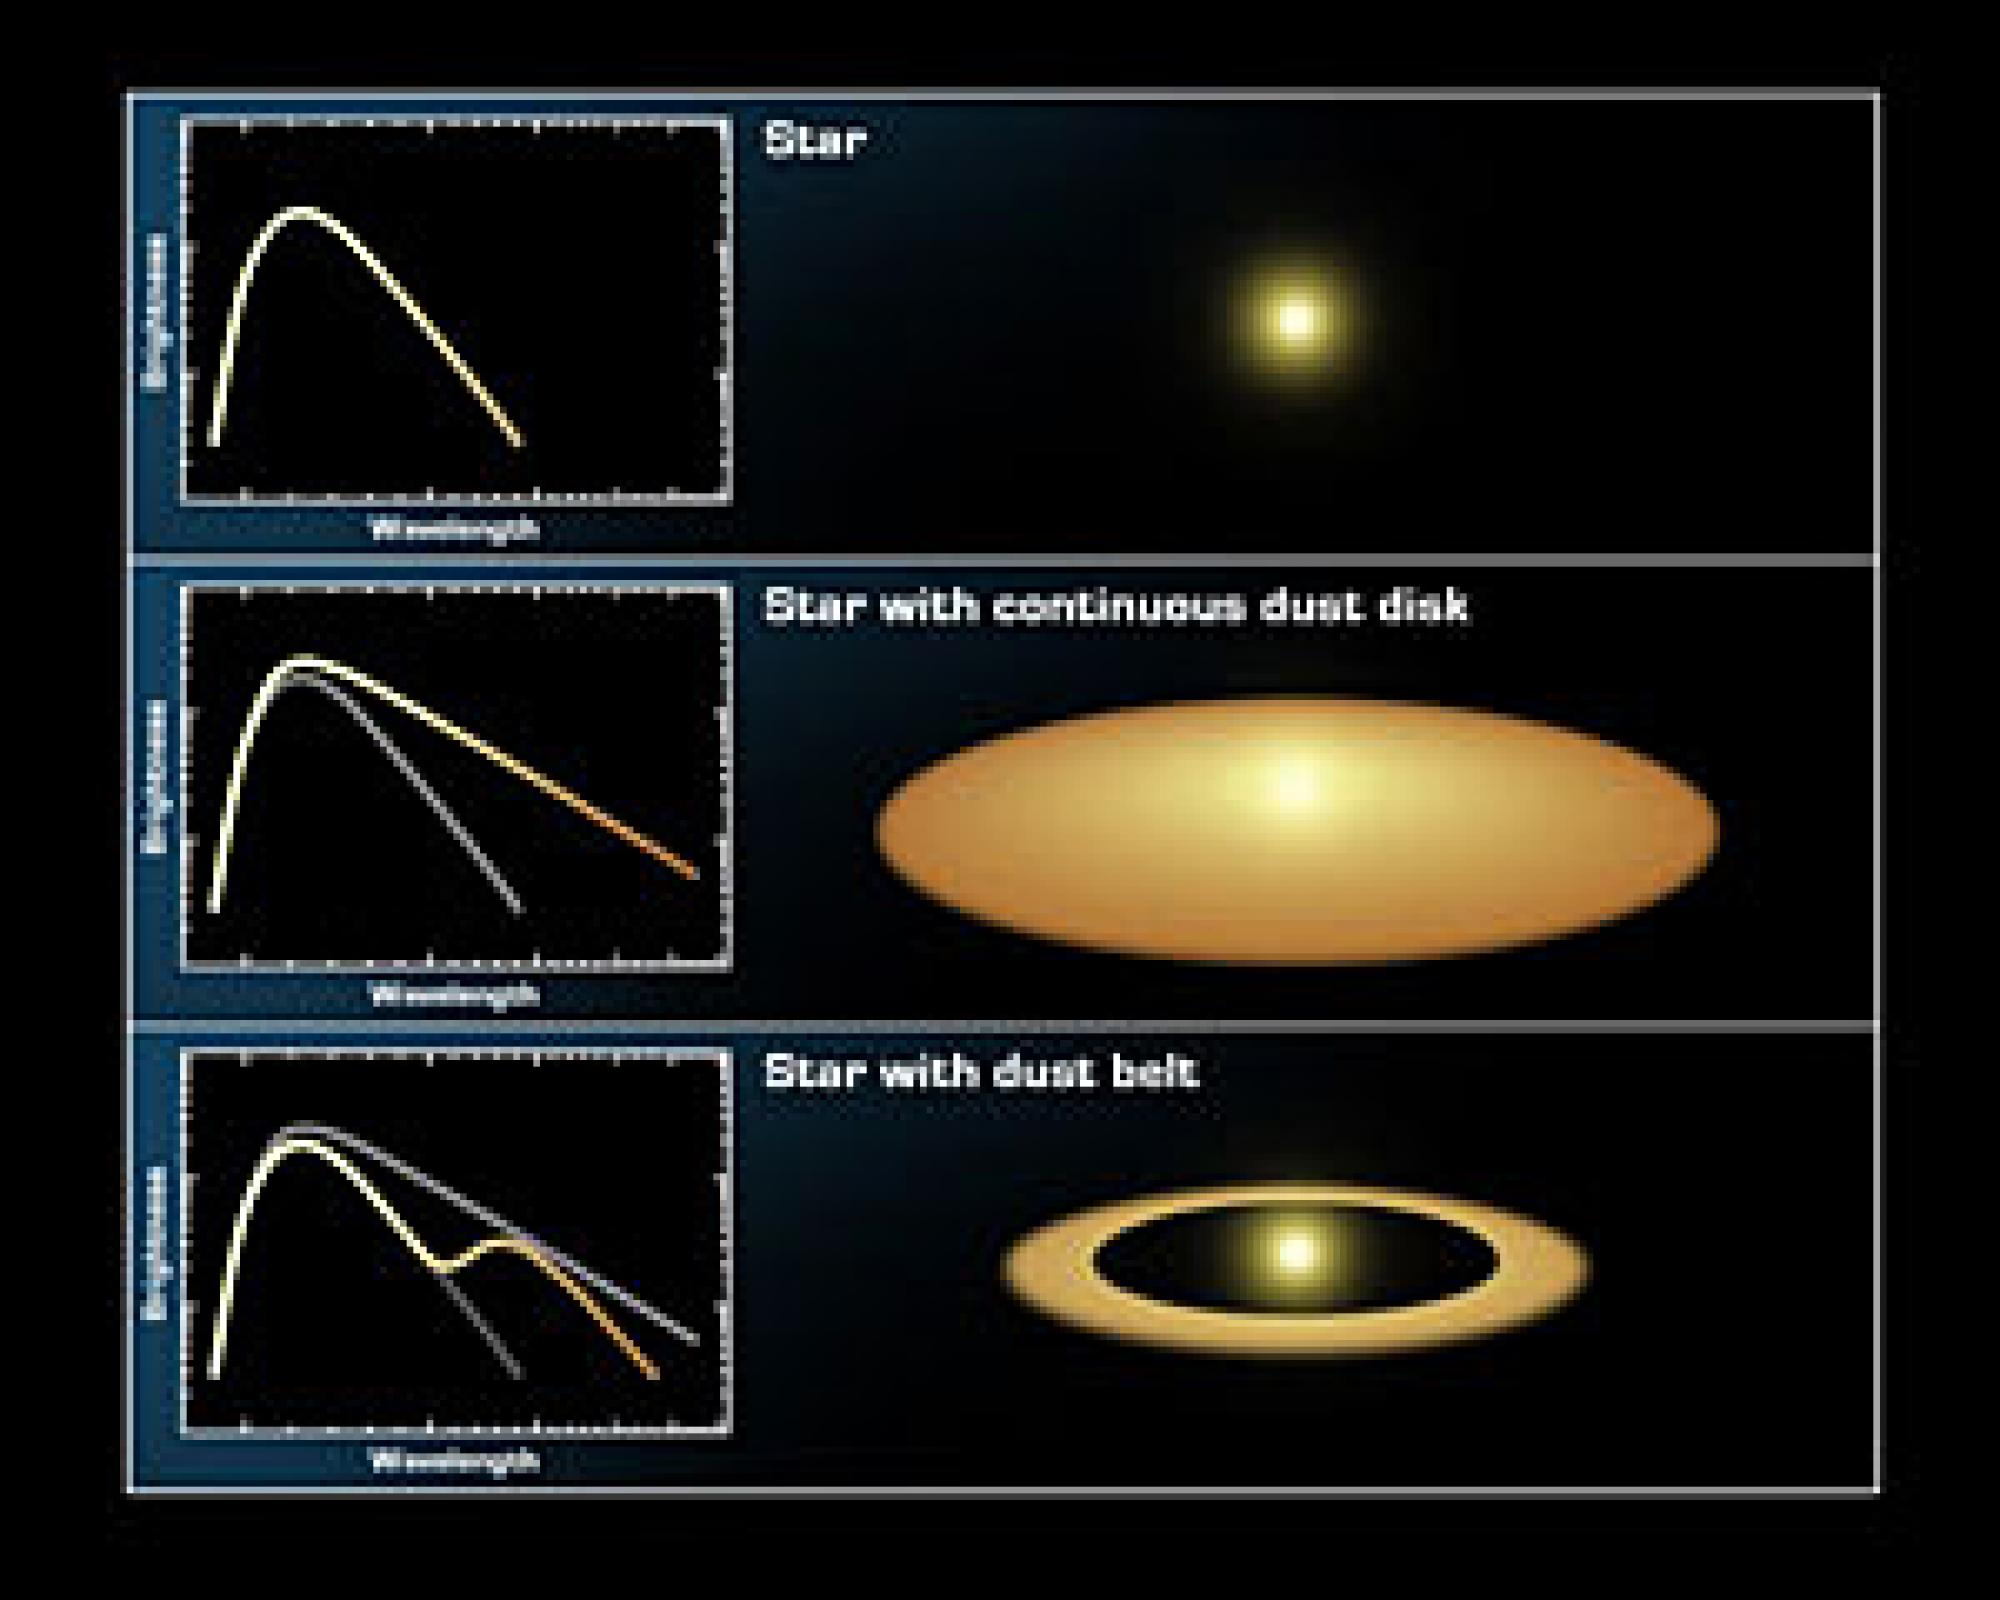 Scientists can characterize a disk by looking at its infrared spectrum. (Credit: NASA/JPL-Caltech/T. Pyle, SSC